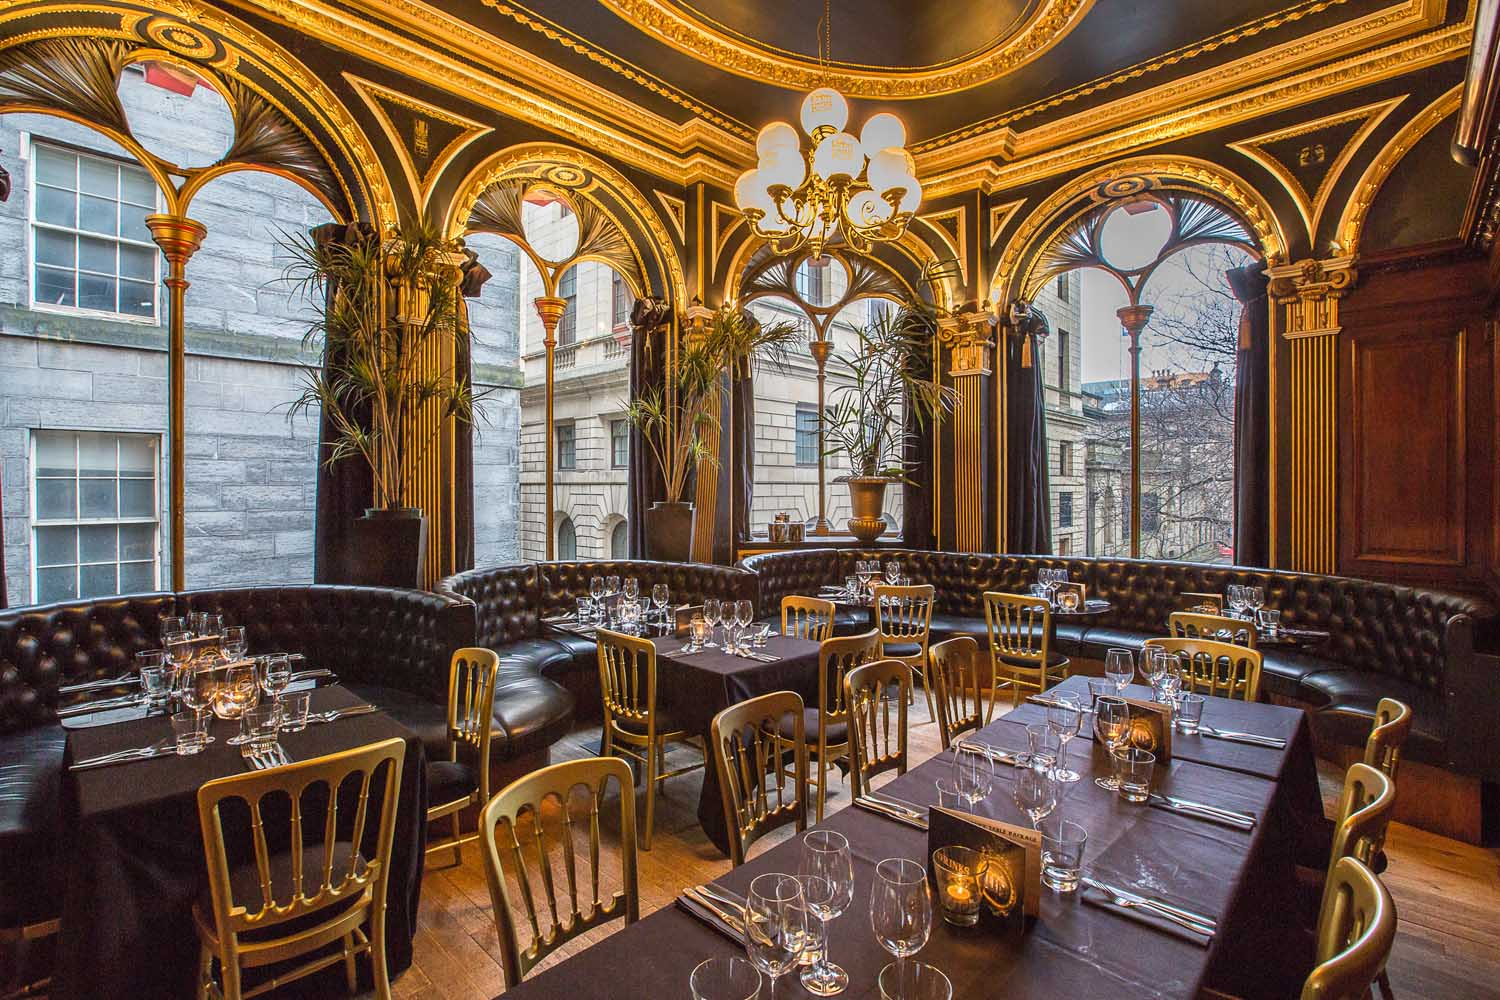 Fabulous Photograph Gallery The Dining Room | The Voodoo Rooms with regard to High Quality The Dining Room Edinburgh